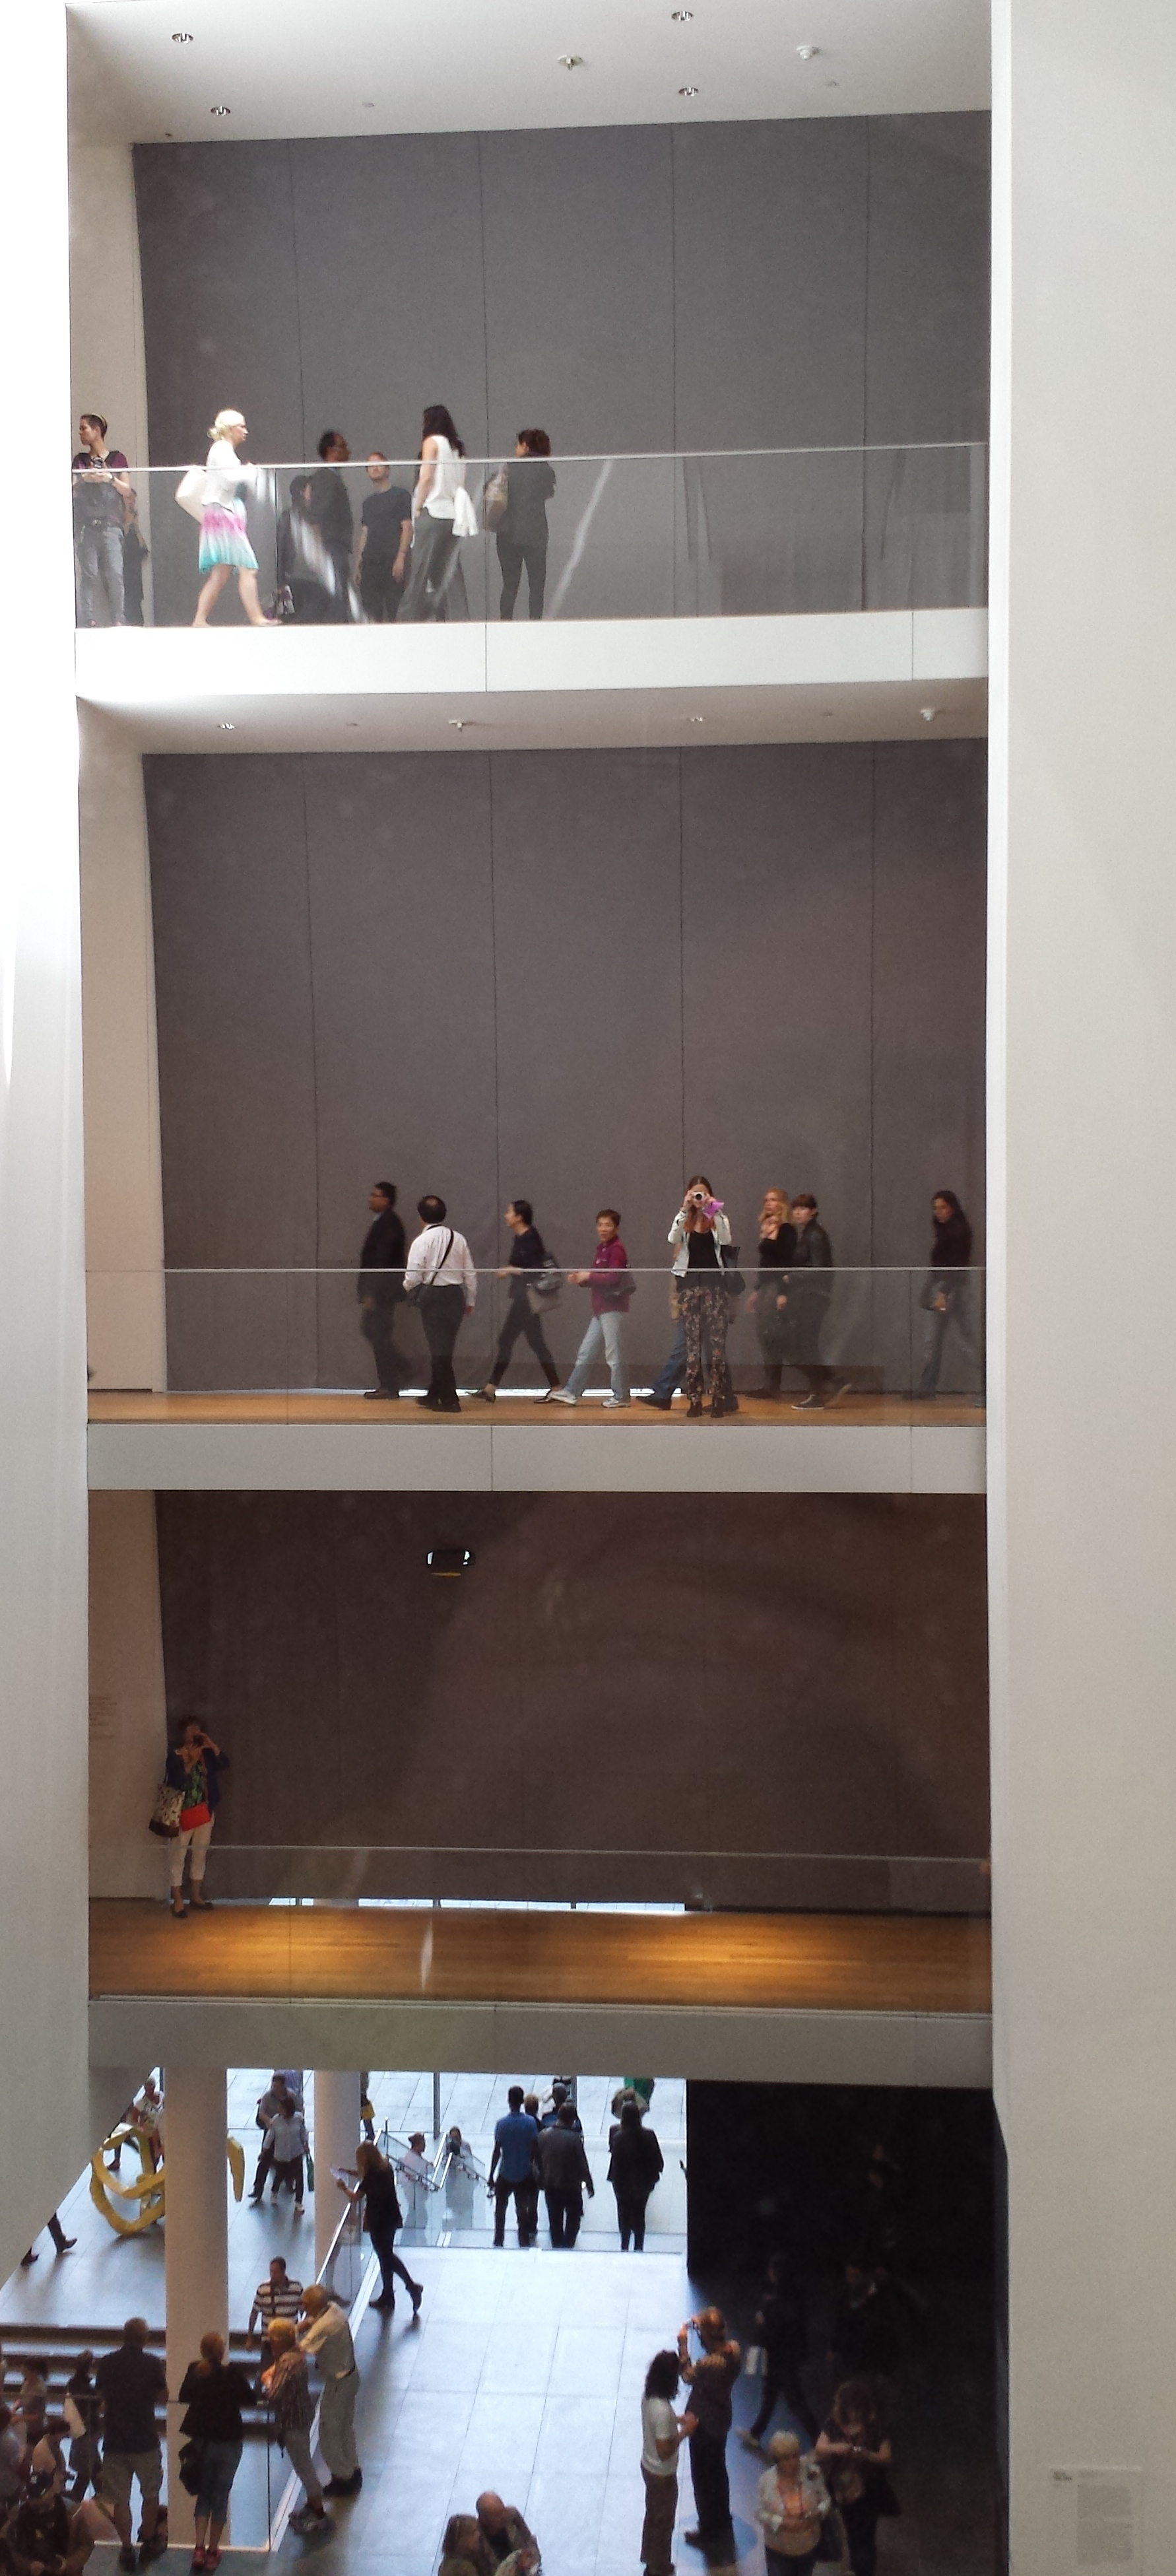 A woman on the same level at the MoMA takes my photo as I take hers. We don't know each other, but here we are locked into each other's photos for ALL TIME.